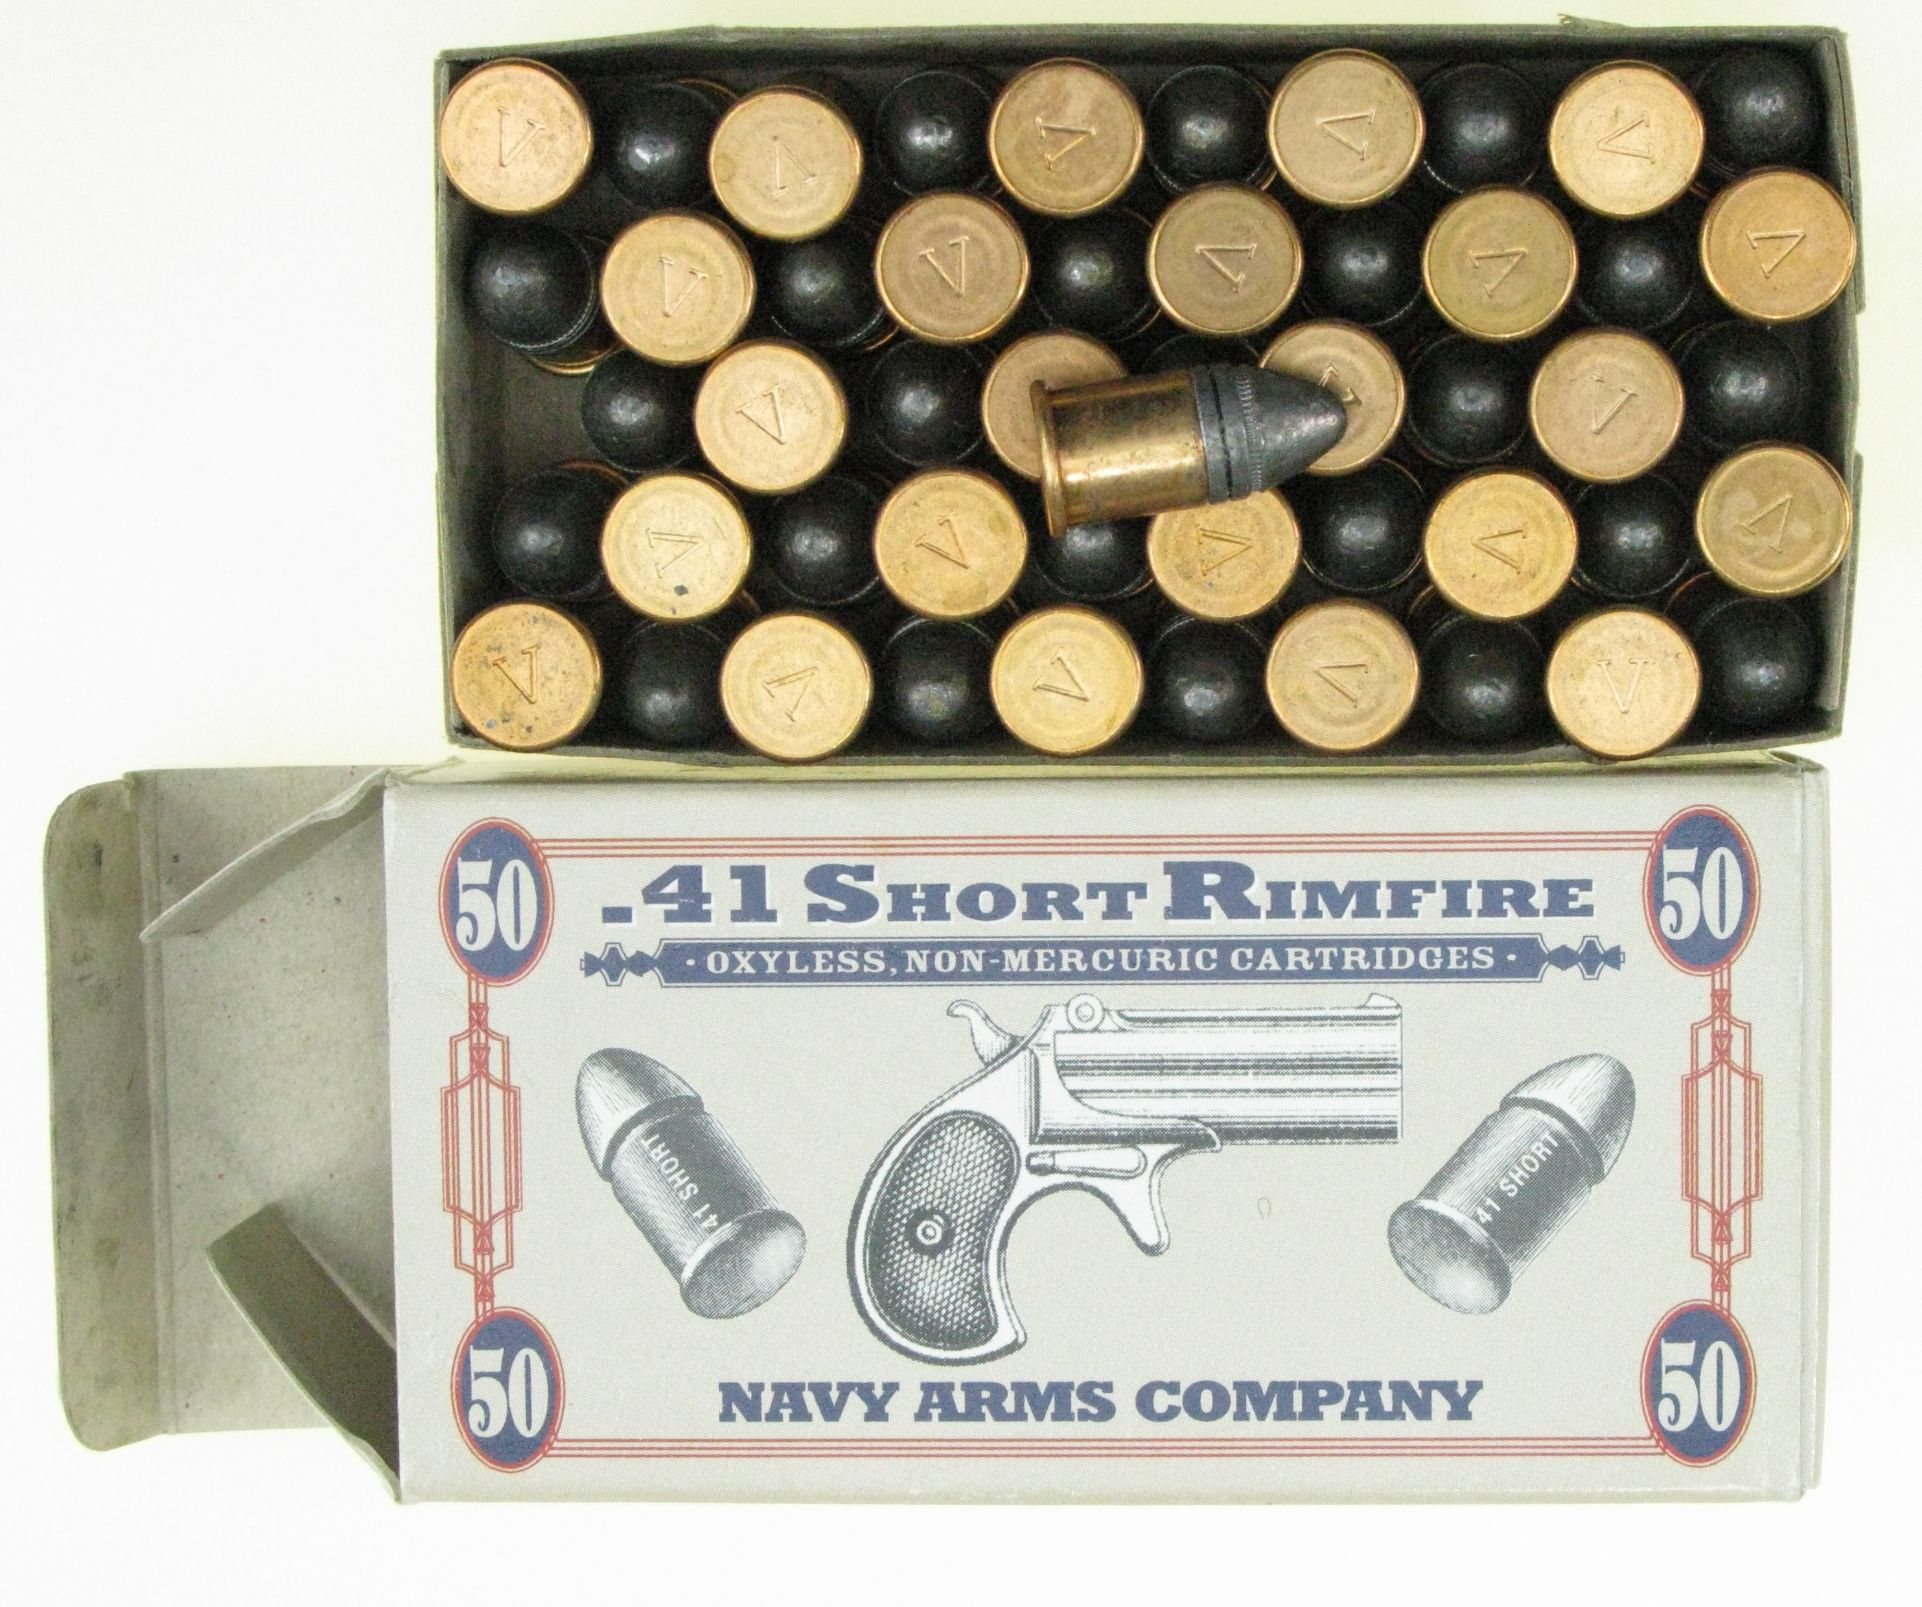 dating ammunition boxes Dale's decoy den shotshell boxes shotshell boxes all are 12 ga and empty unless specified otherwise this website is maintained regularly and is up to date.